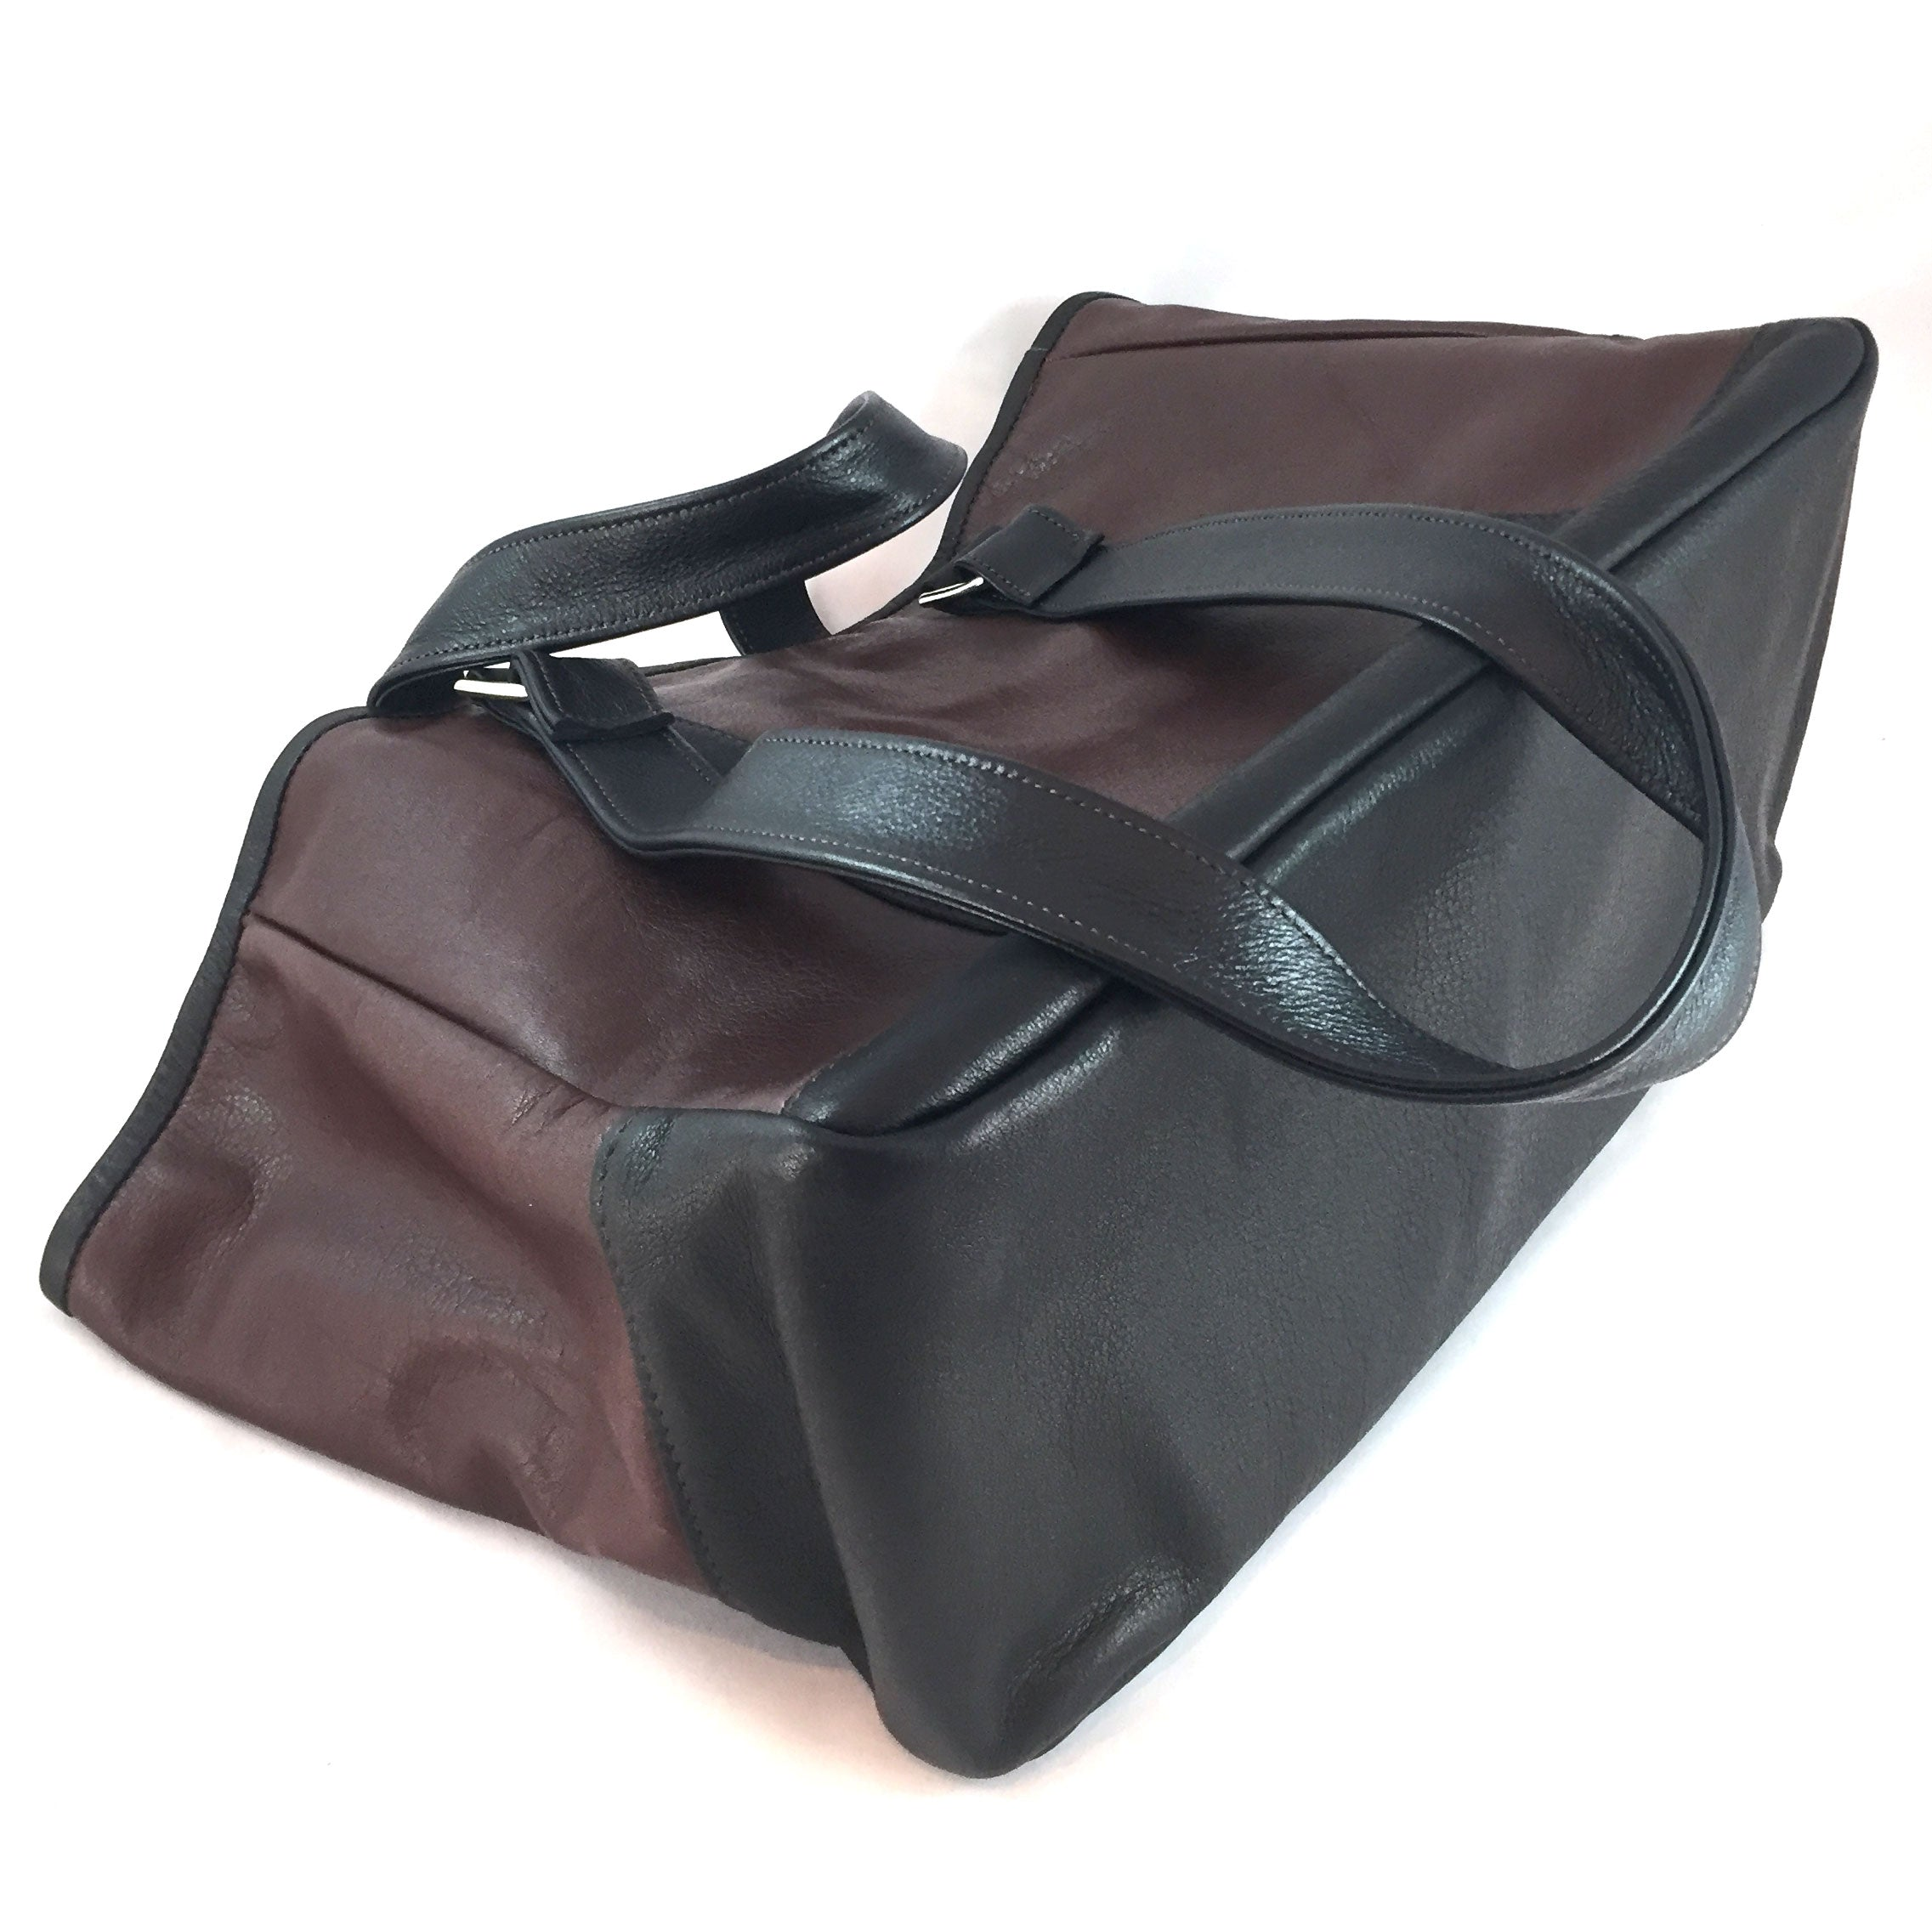 Knight Leather Tote Bag Bottom Brown w Dark Brown Accent 6967-BRDB